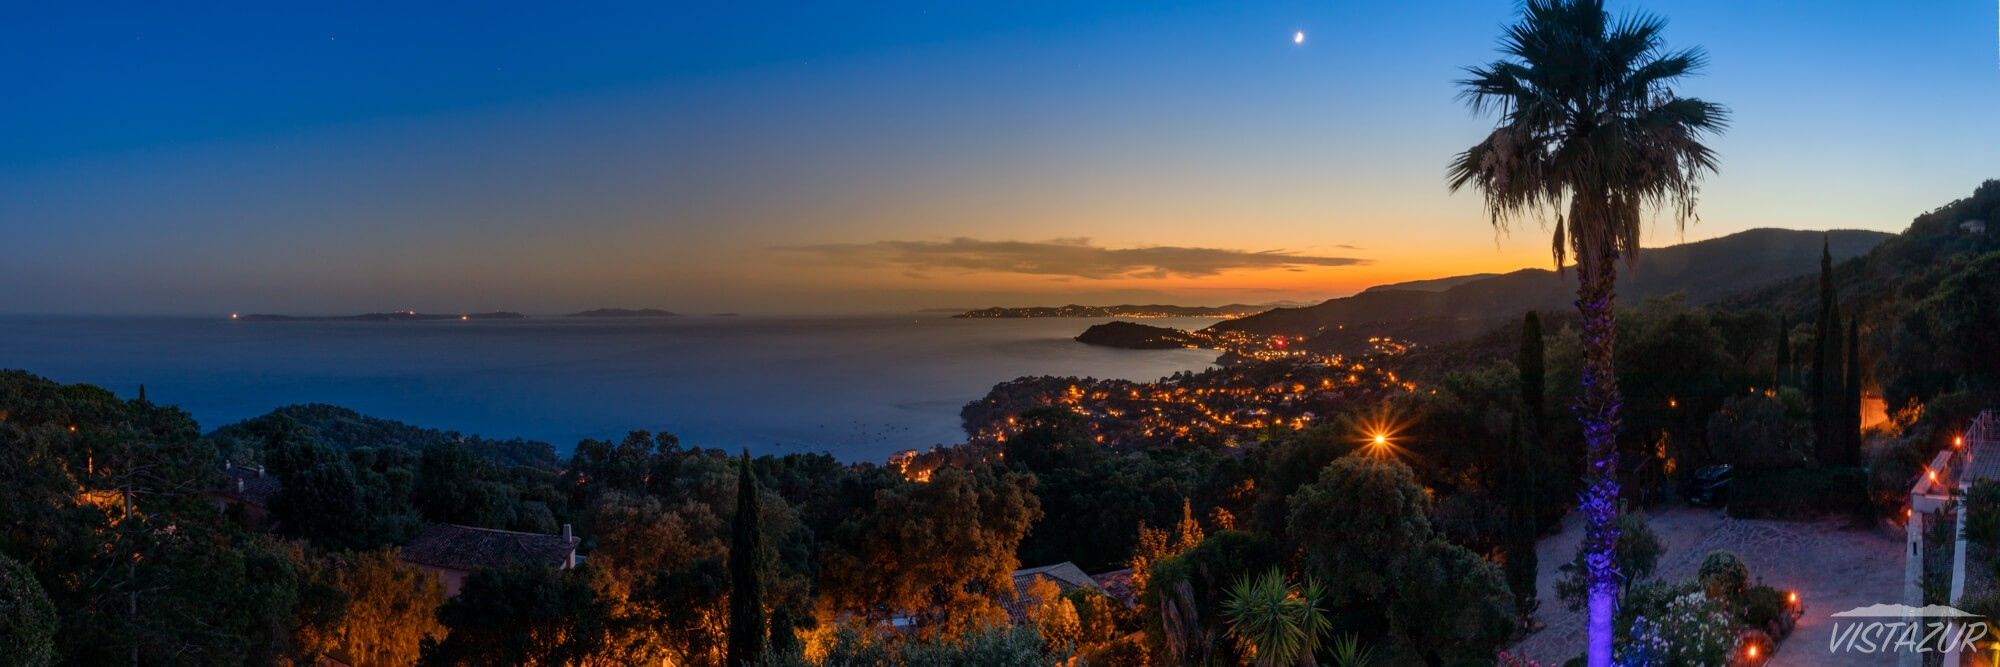 Vistazur villa gulf of Saint-Tropez sunset